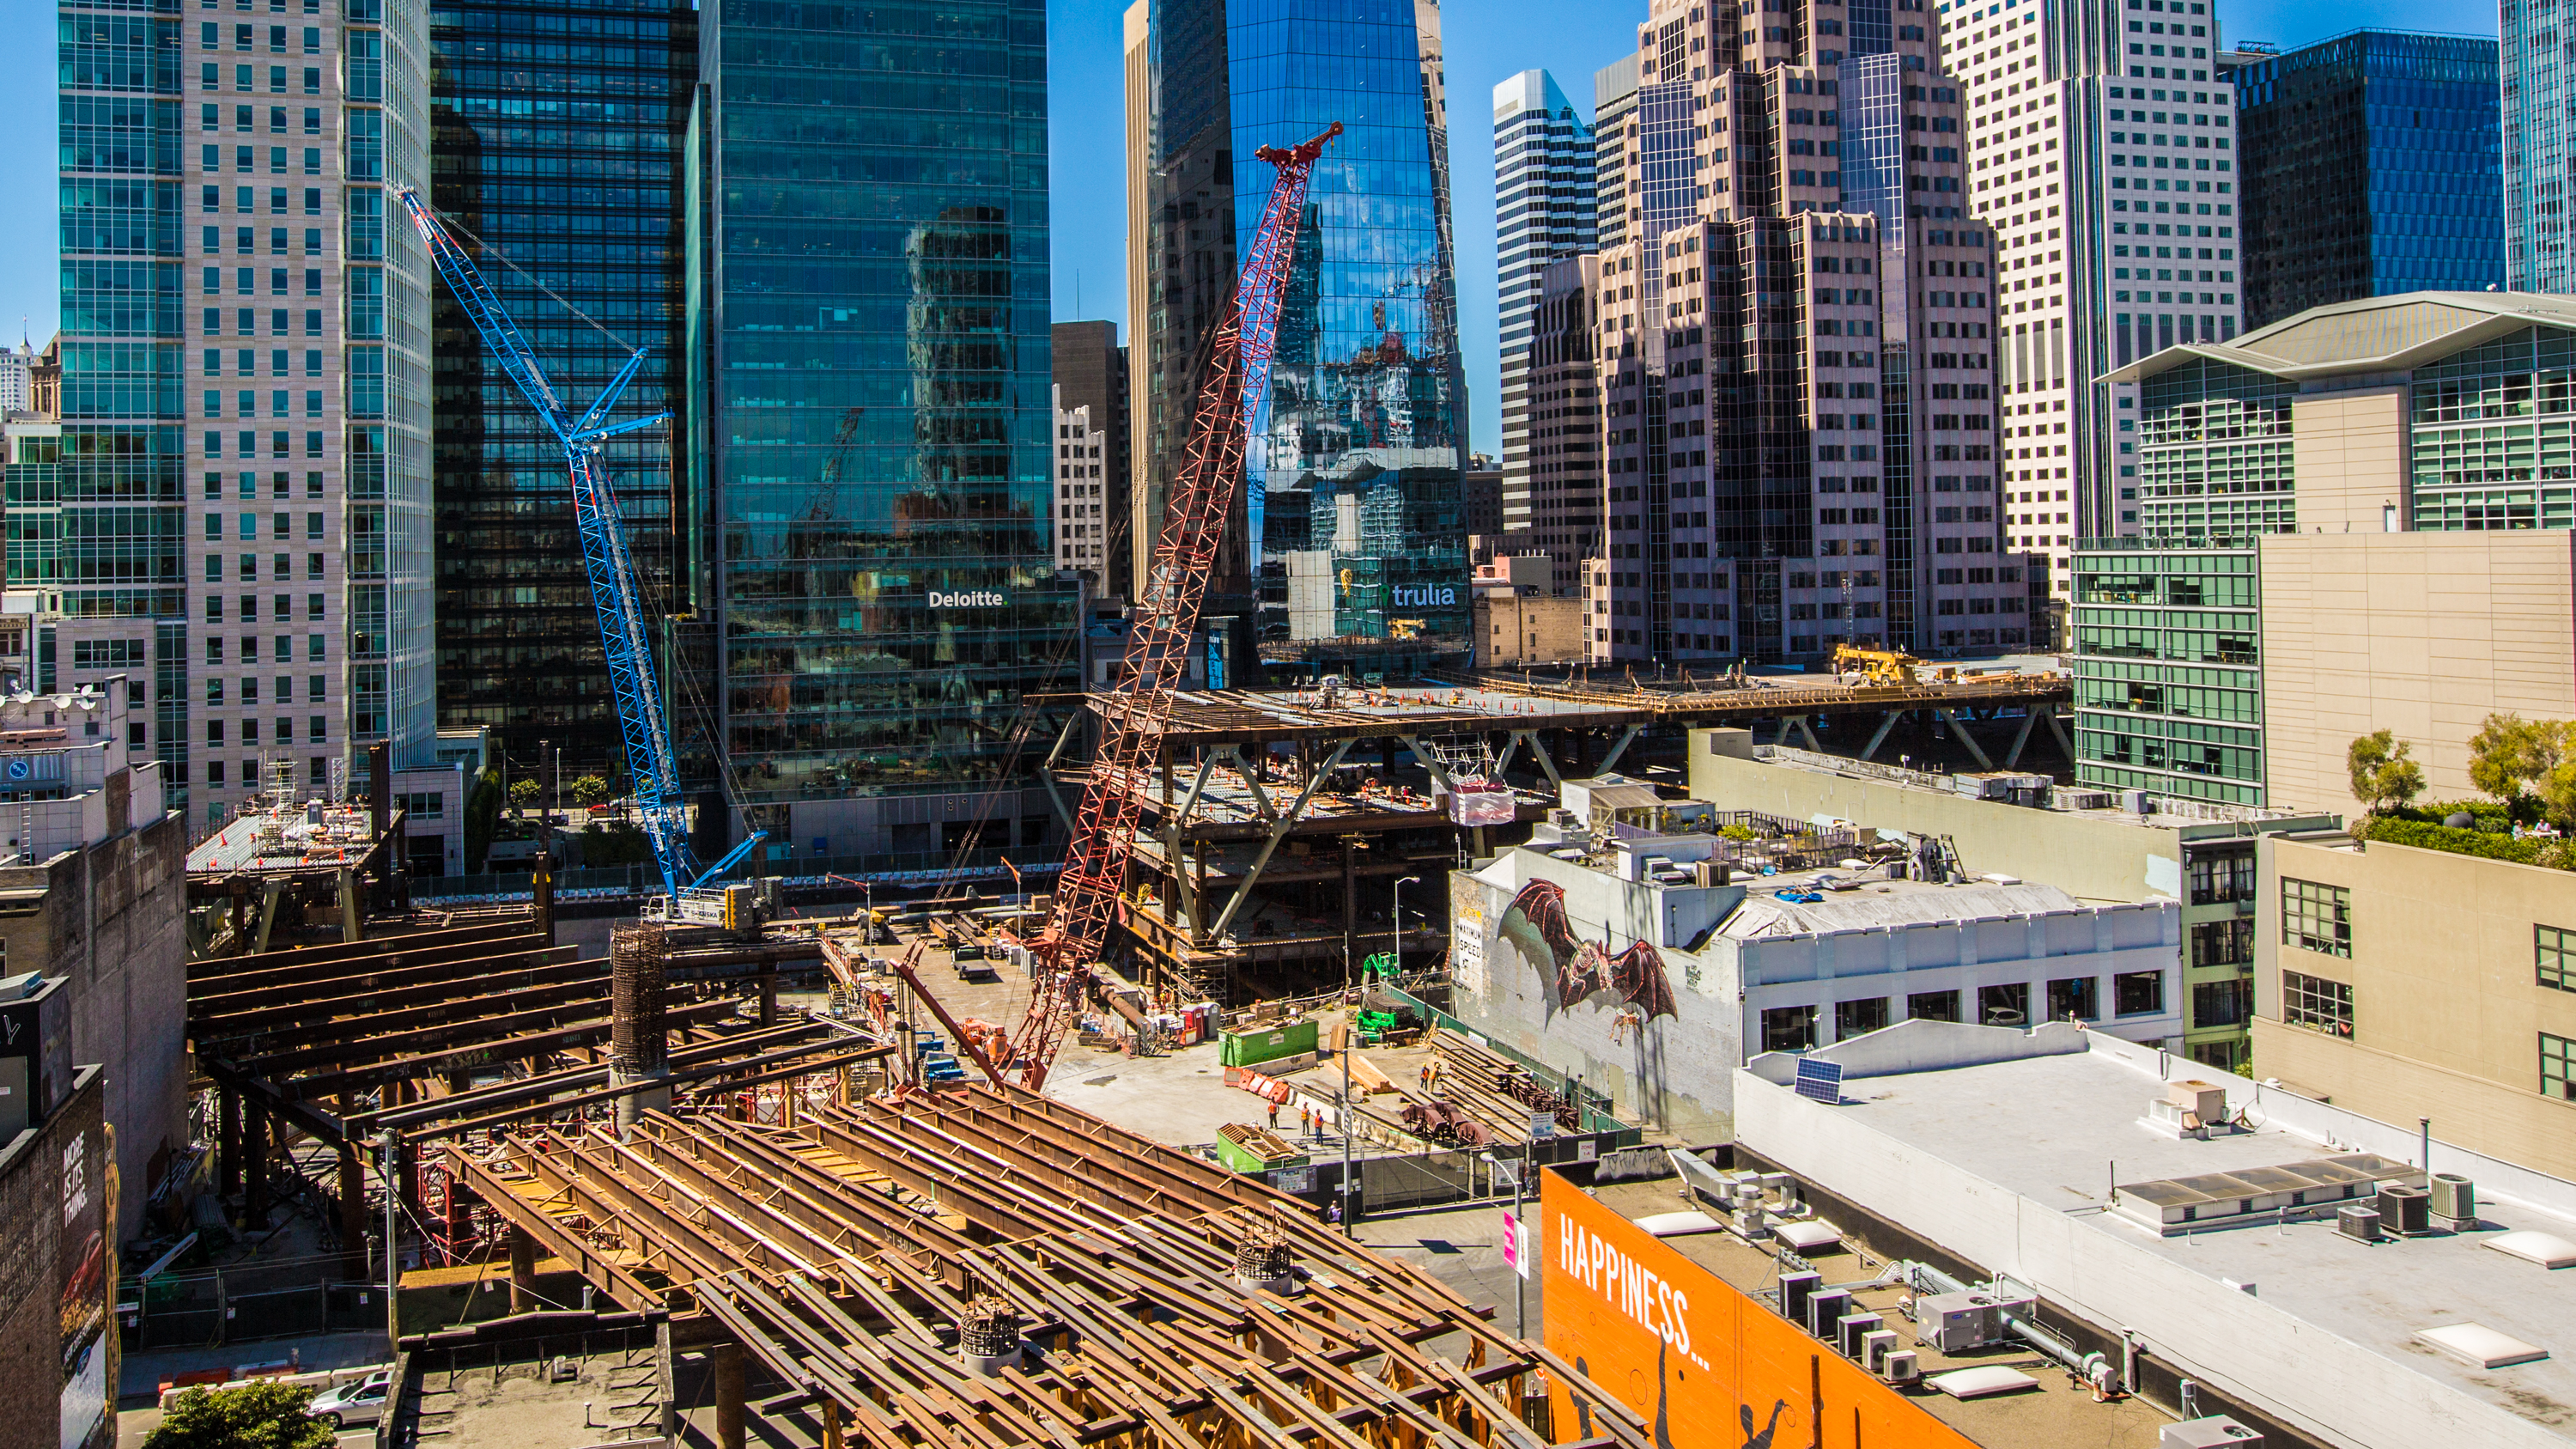 Construction of the $4.5 billion Transbay Transit Center is slated to be completed in late 2017.